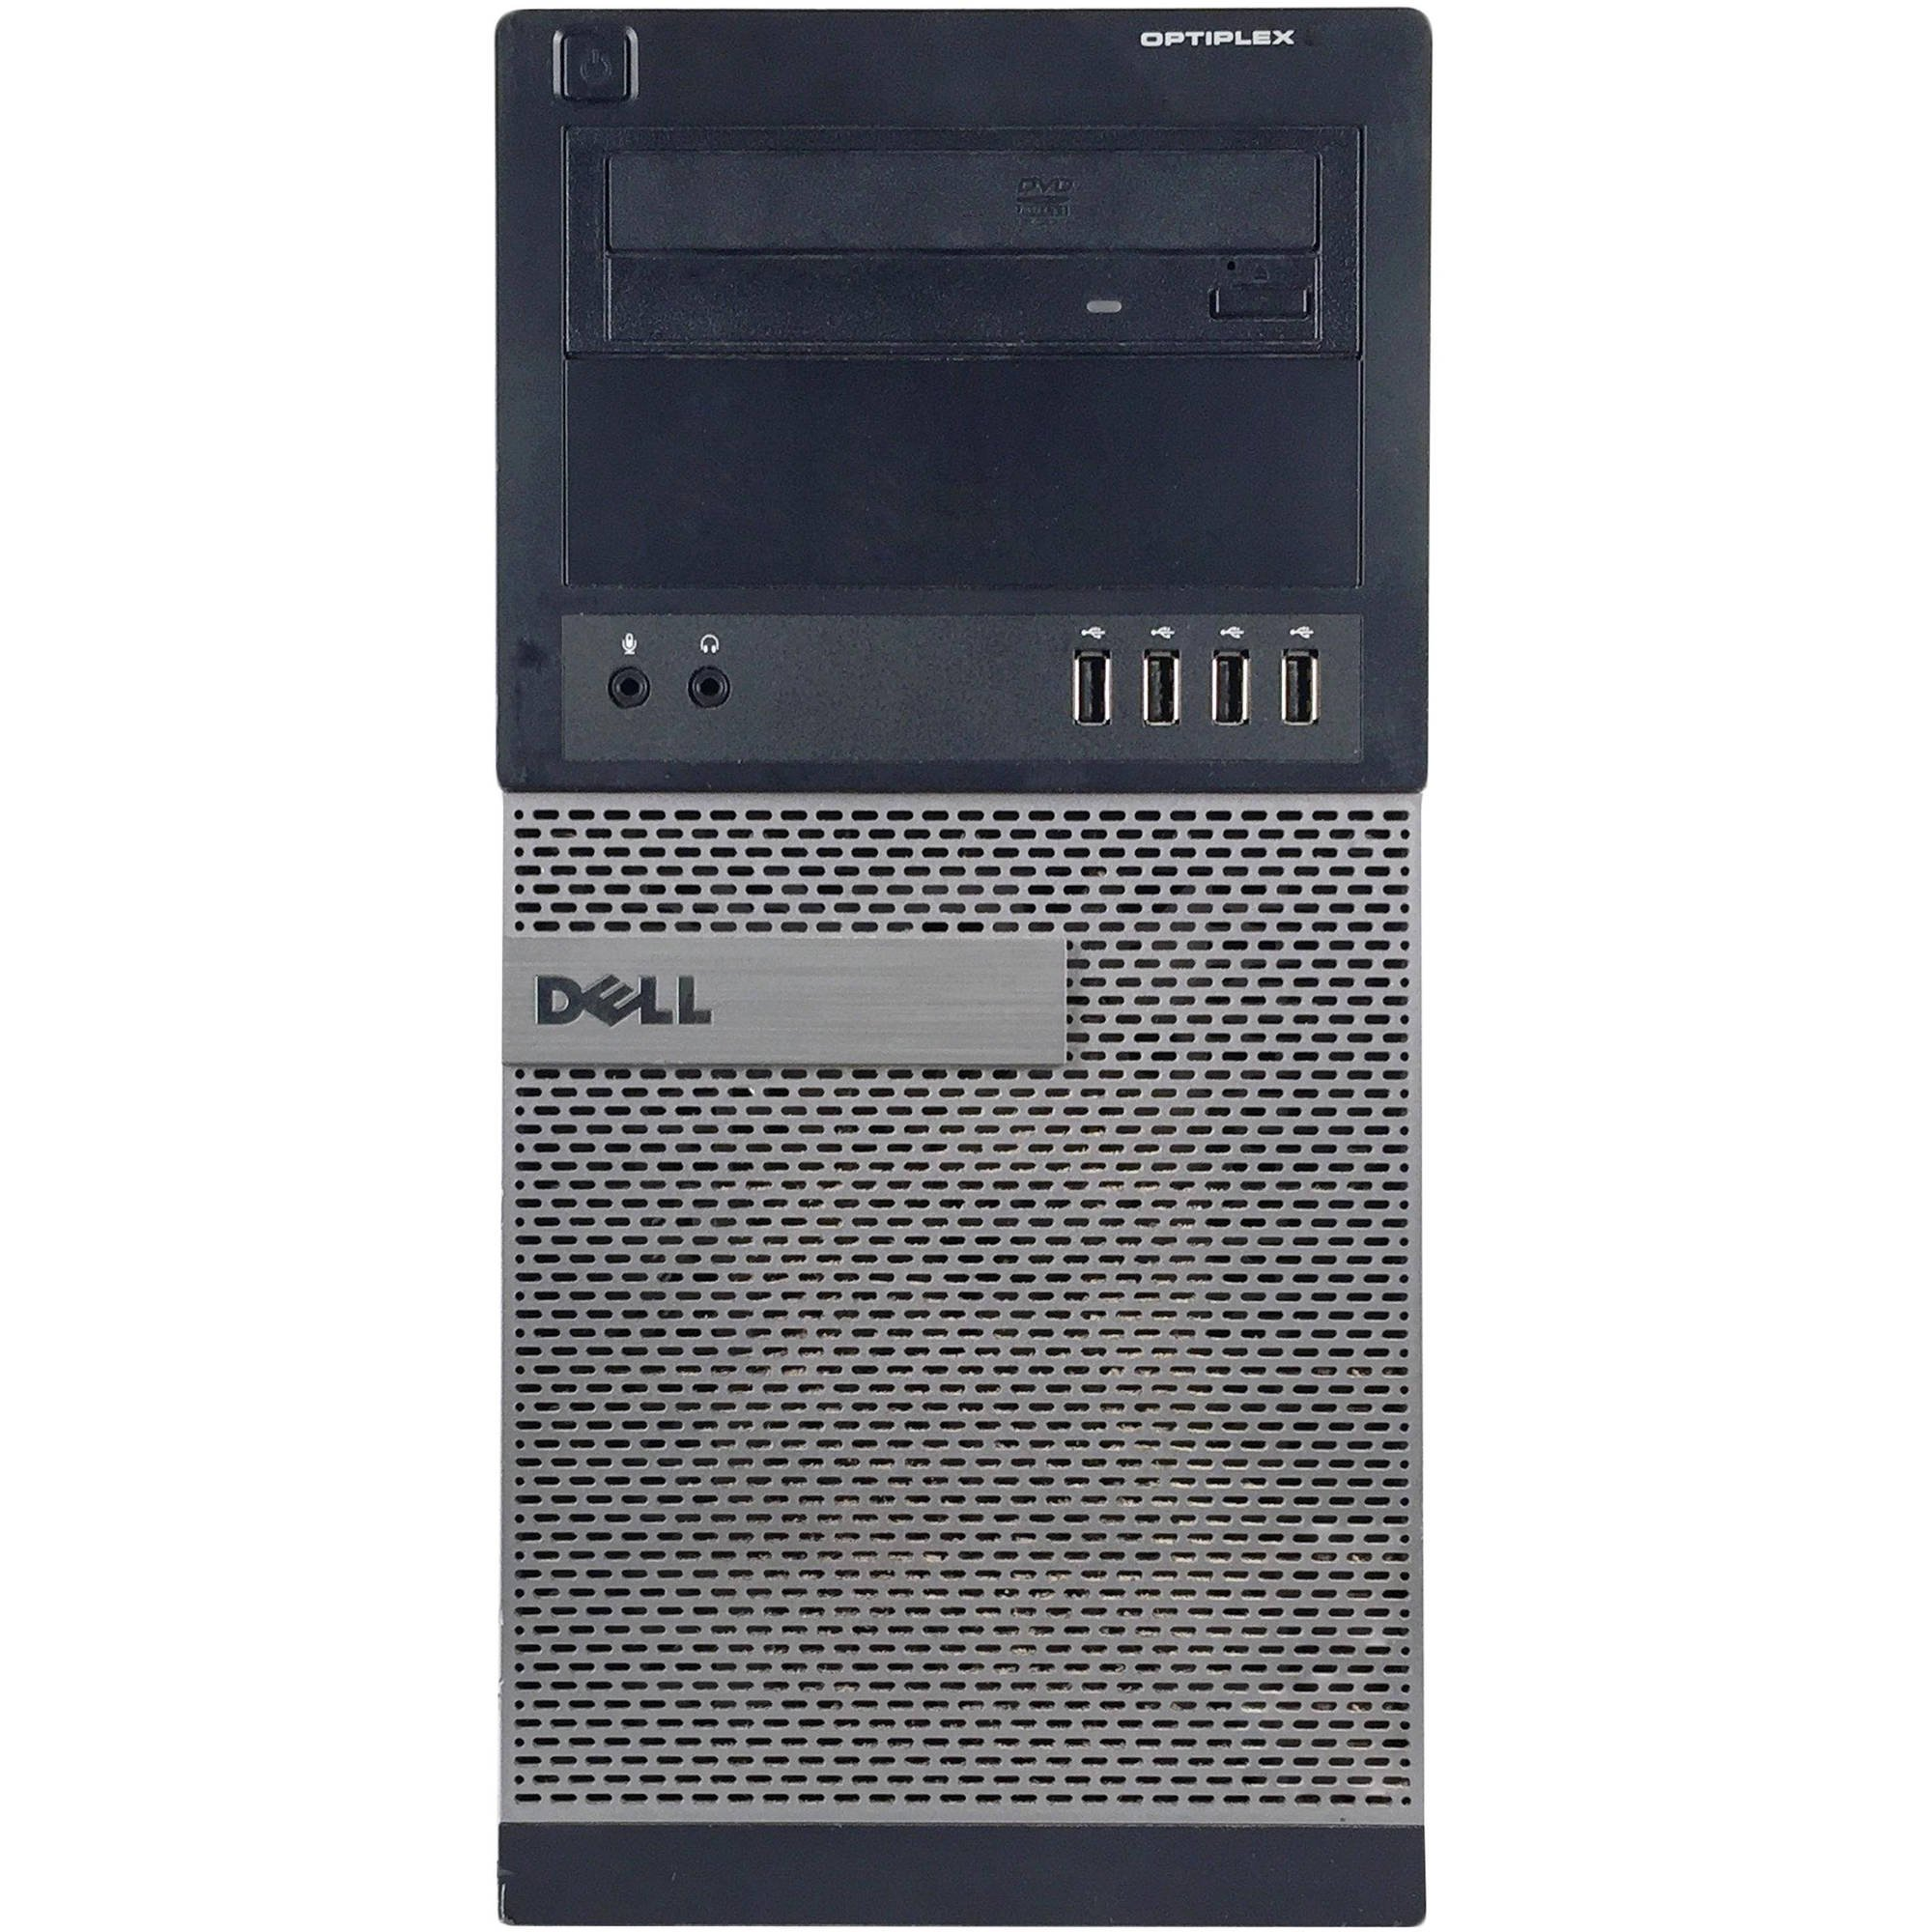 Dell Optiplex 990 Tower Premium Business Desktop Computer (Intel Quad-Core i5-2400 up to 3.4GHz, 16GB DDR3 Memory, 2TB HDD + 120GB SSD, DVD, WiFi, Windows 10 Professional) (Certified Refurbished)